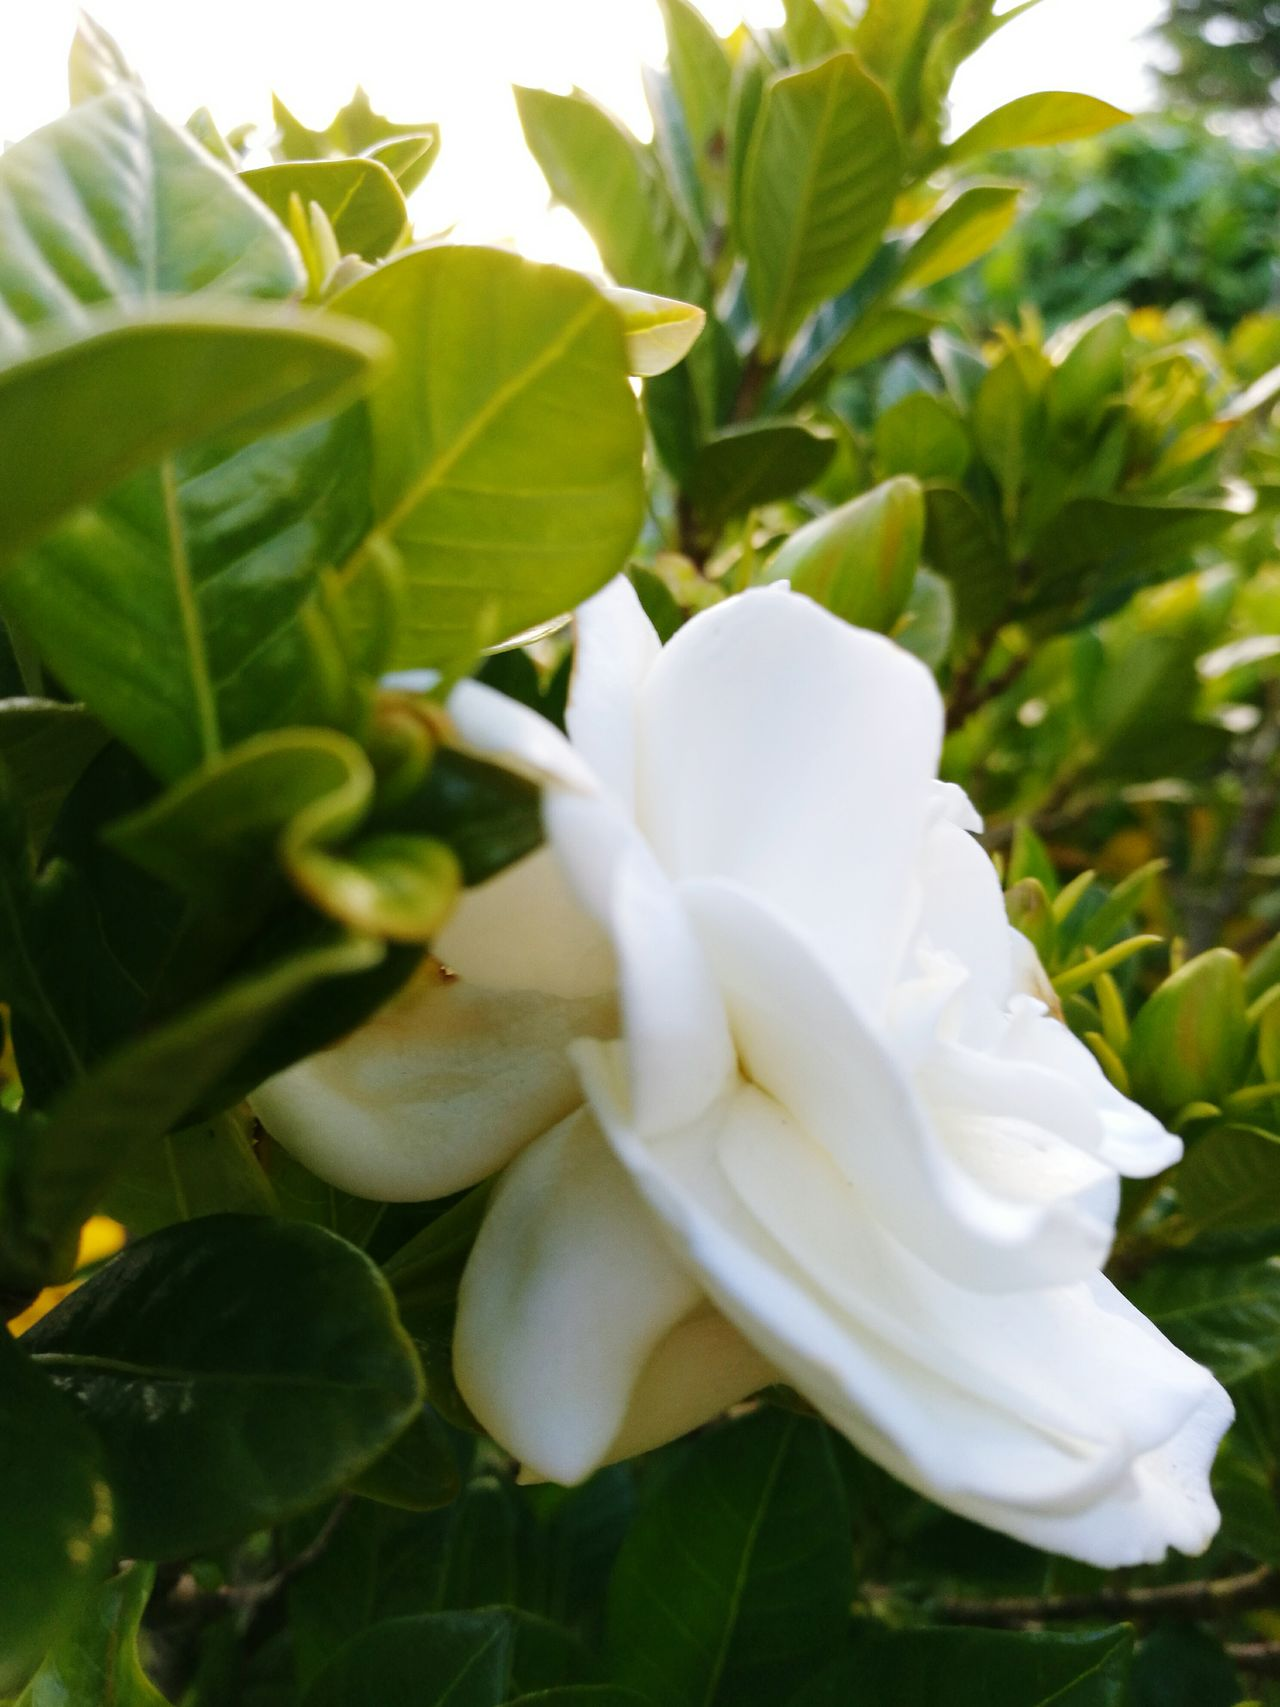 Gardenia Flower Gardenia My Frontyard Garden Photography Beauty In Nature Flower White Color Nature Beautiful Close-up DayGrowth Fresh Flowers Leaves🌿 My Point Of View Flower Photography Plants 🌱